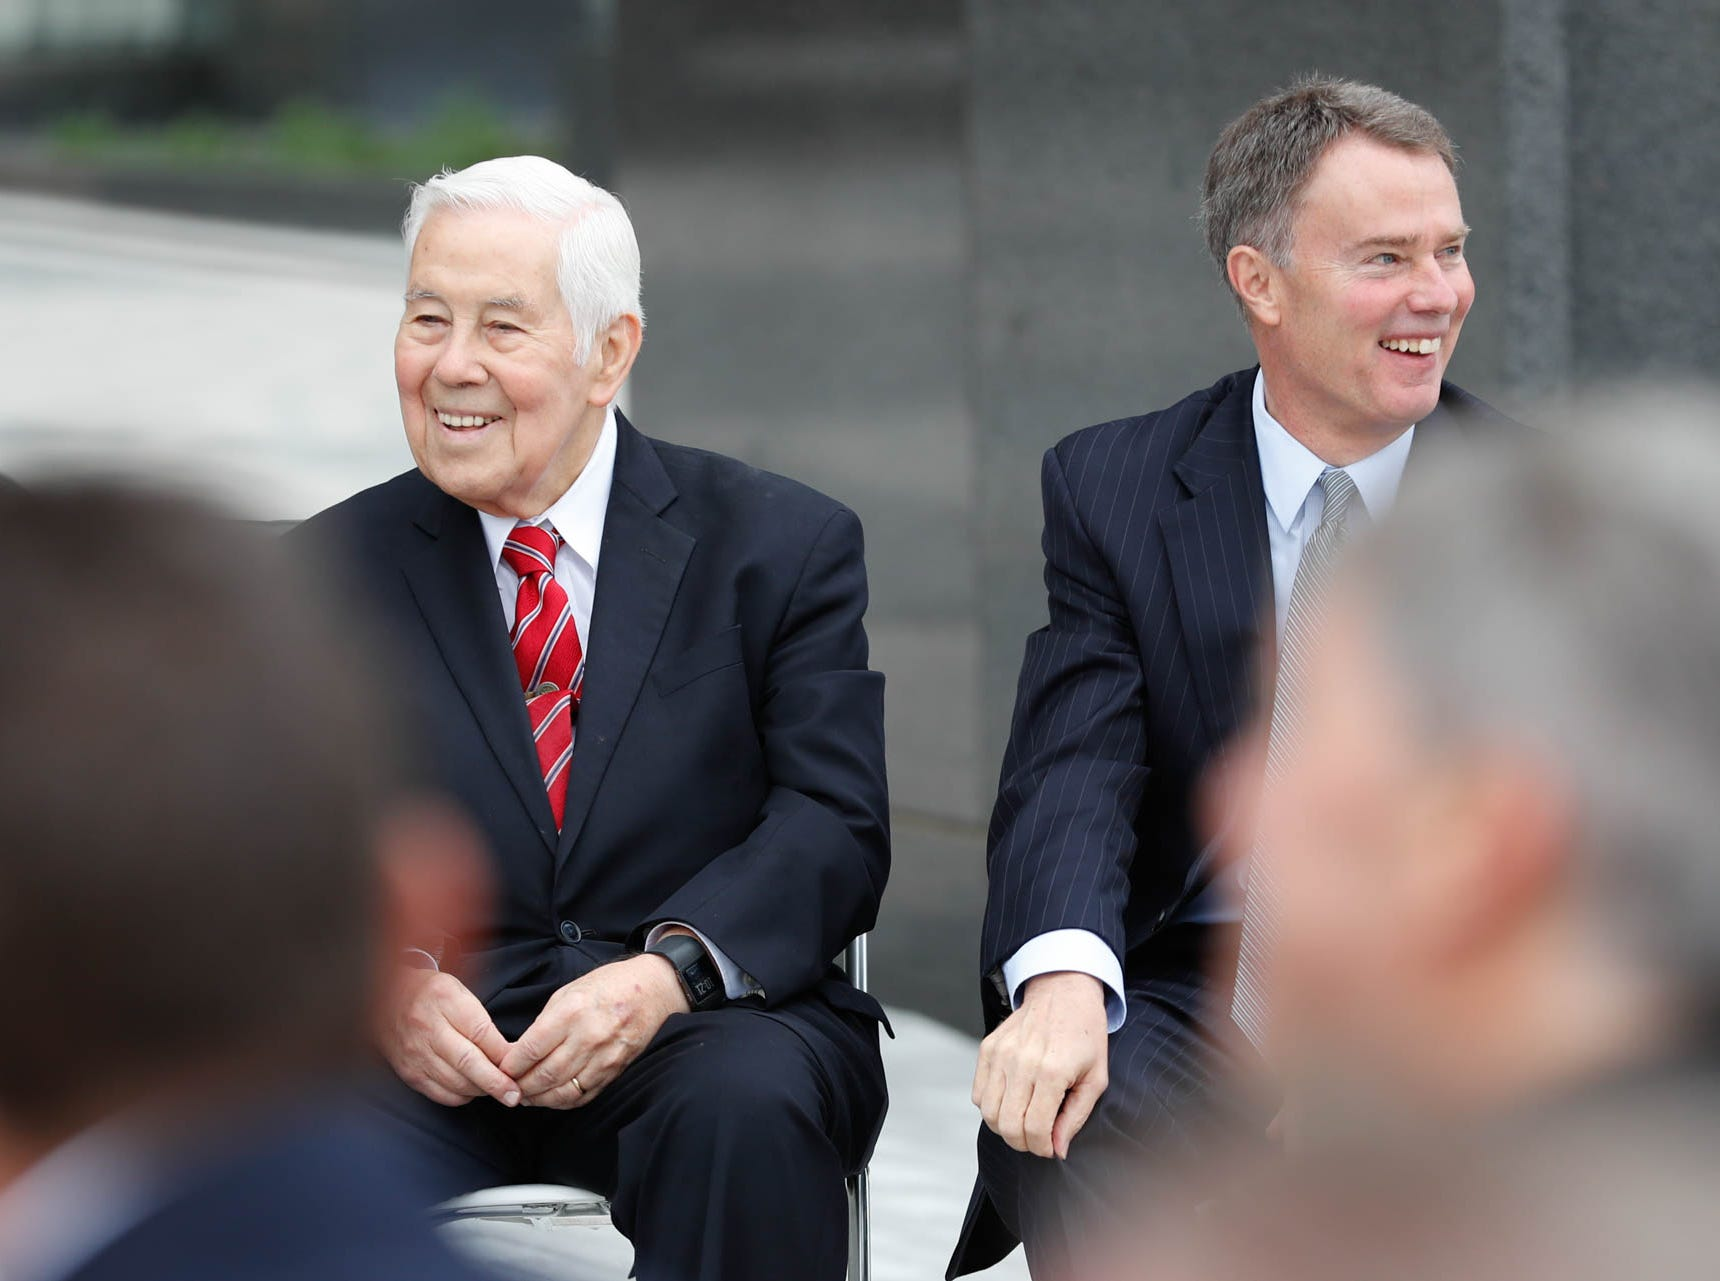 Former Senator and Mayor, Richard Lugar, and the current Mayor of Indianapolis, Joe Hogsett, listen to remarks during the reopening and dedication of Richard G. Lugar Plaza at the City-County Building in Indianapolis on Thursday, Oct. 11, 2018.